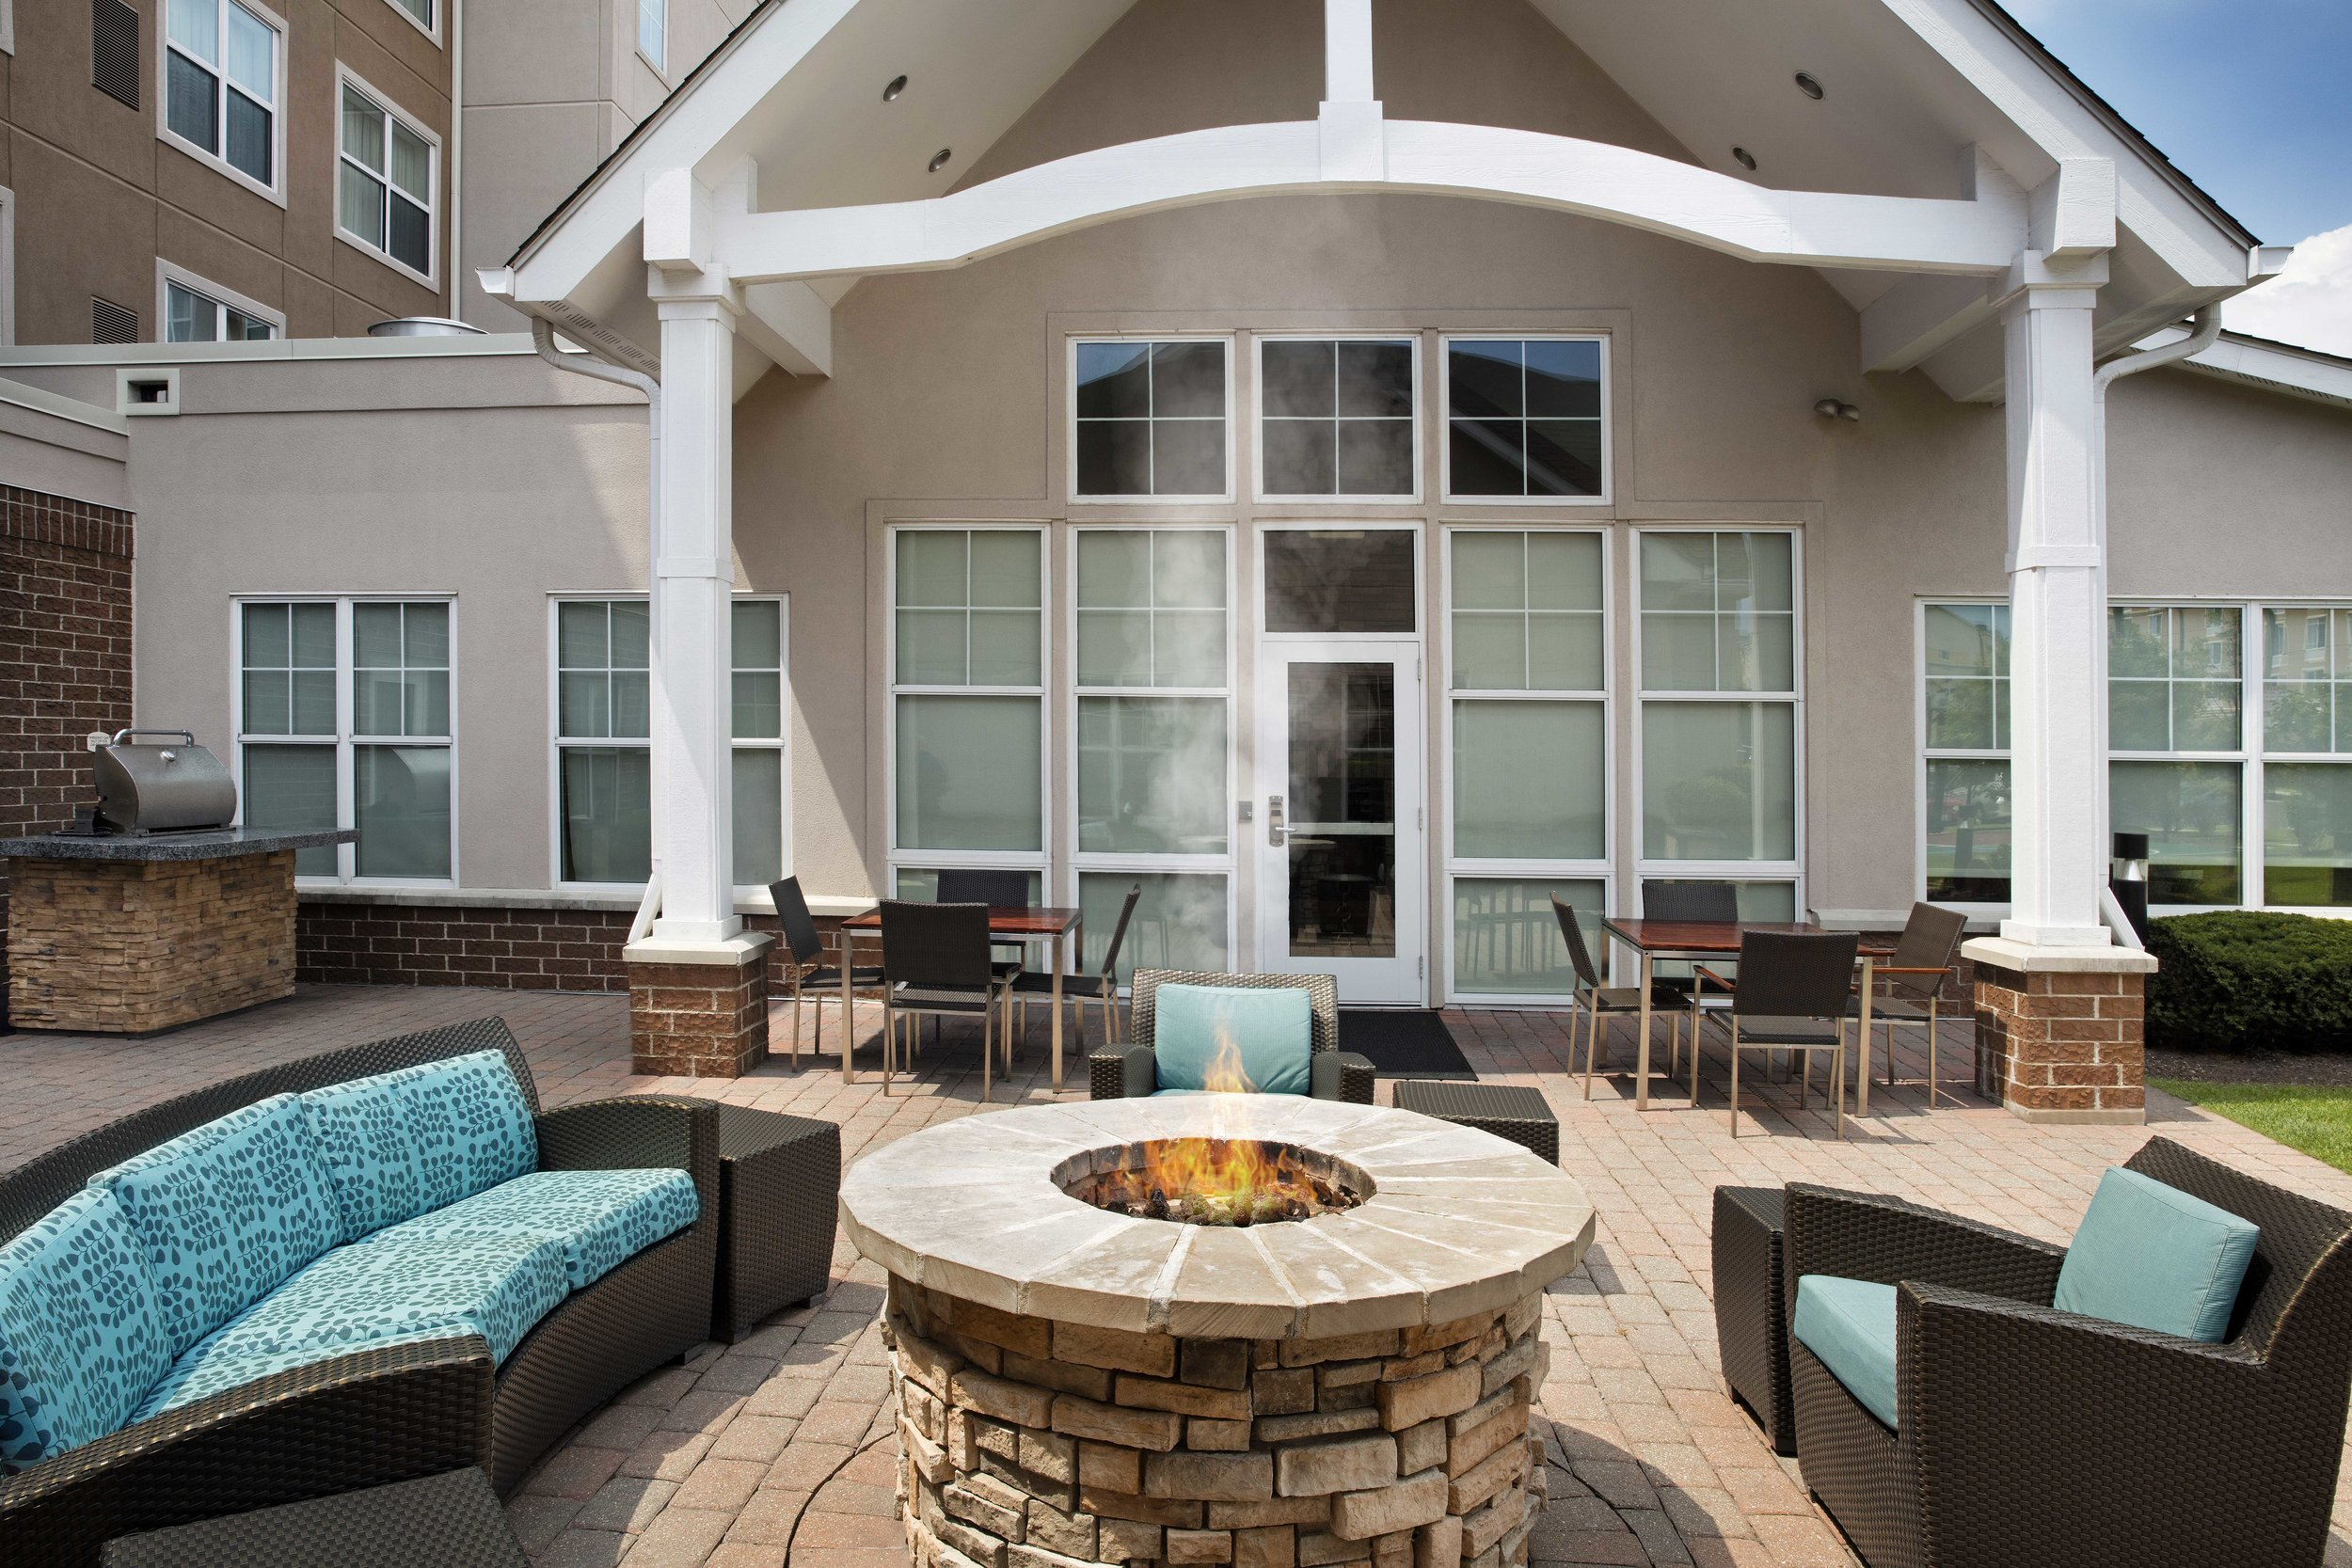 Residence Inn Chicago Midway Patio & Outdoor Area.jpg